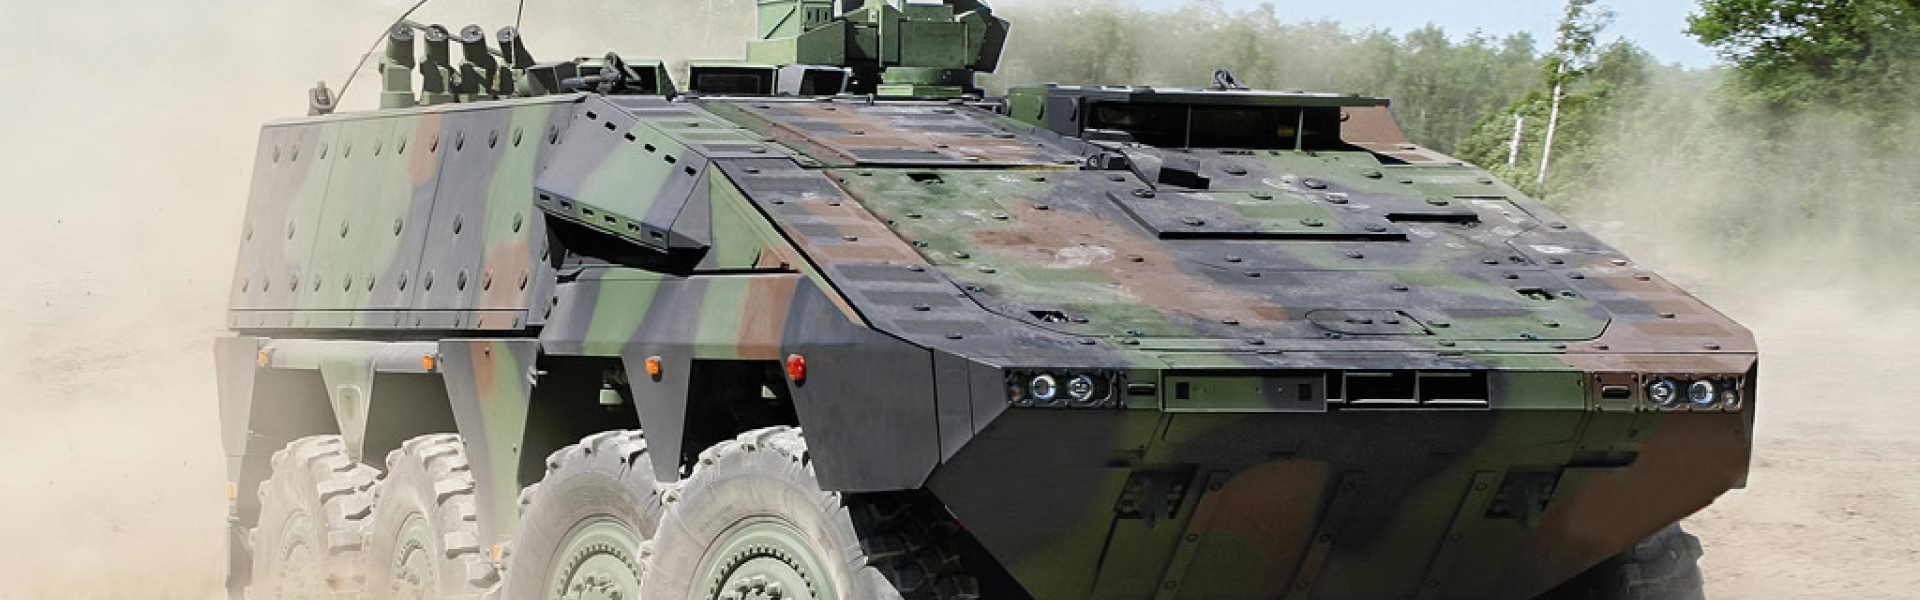 Maintaining products and systems within combat vehicles